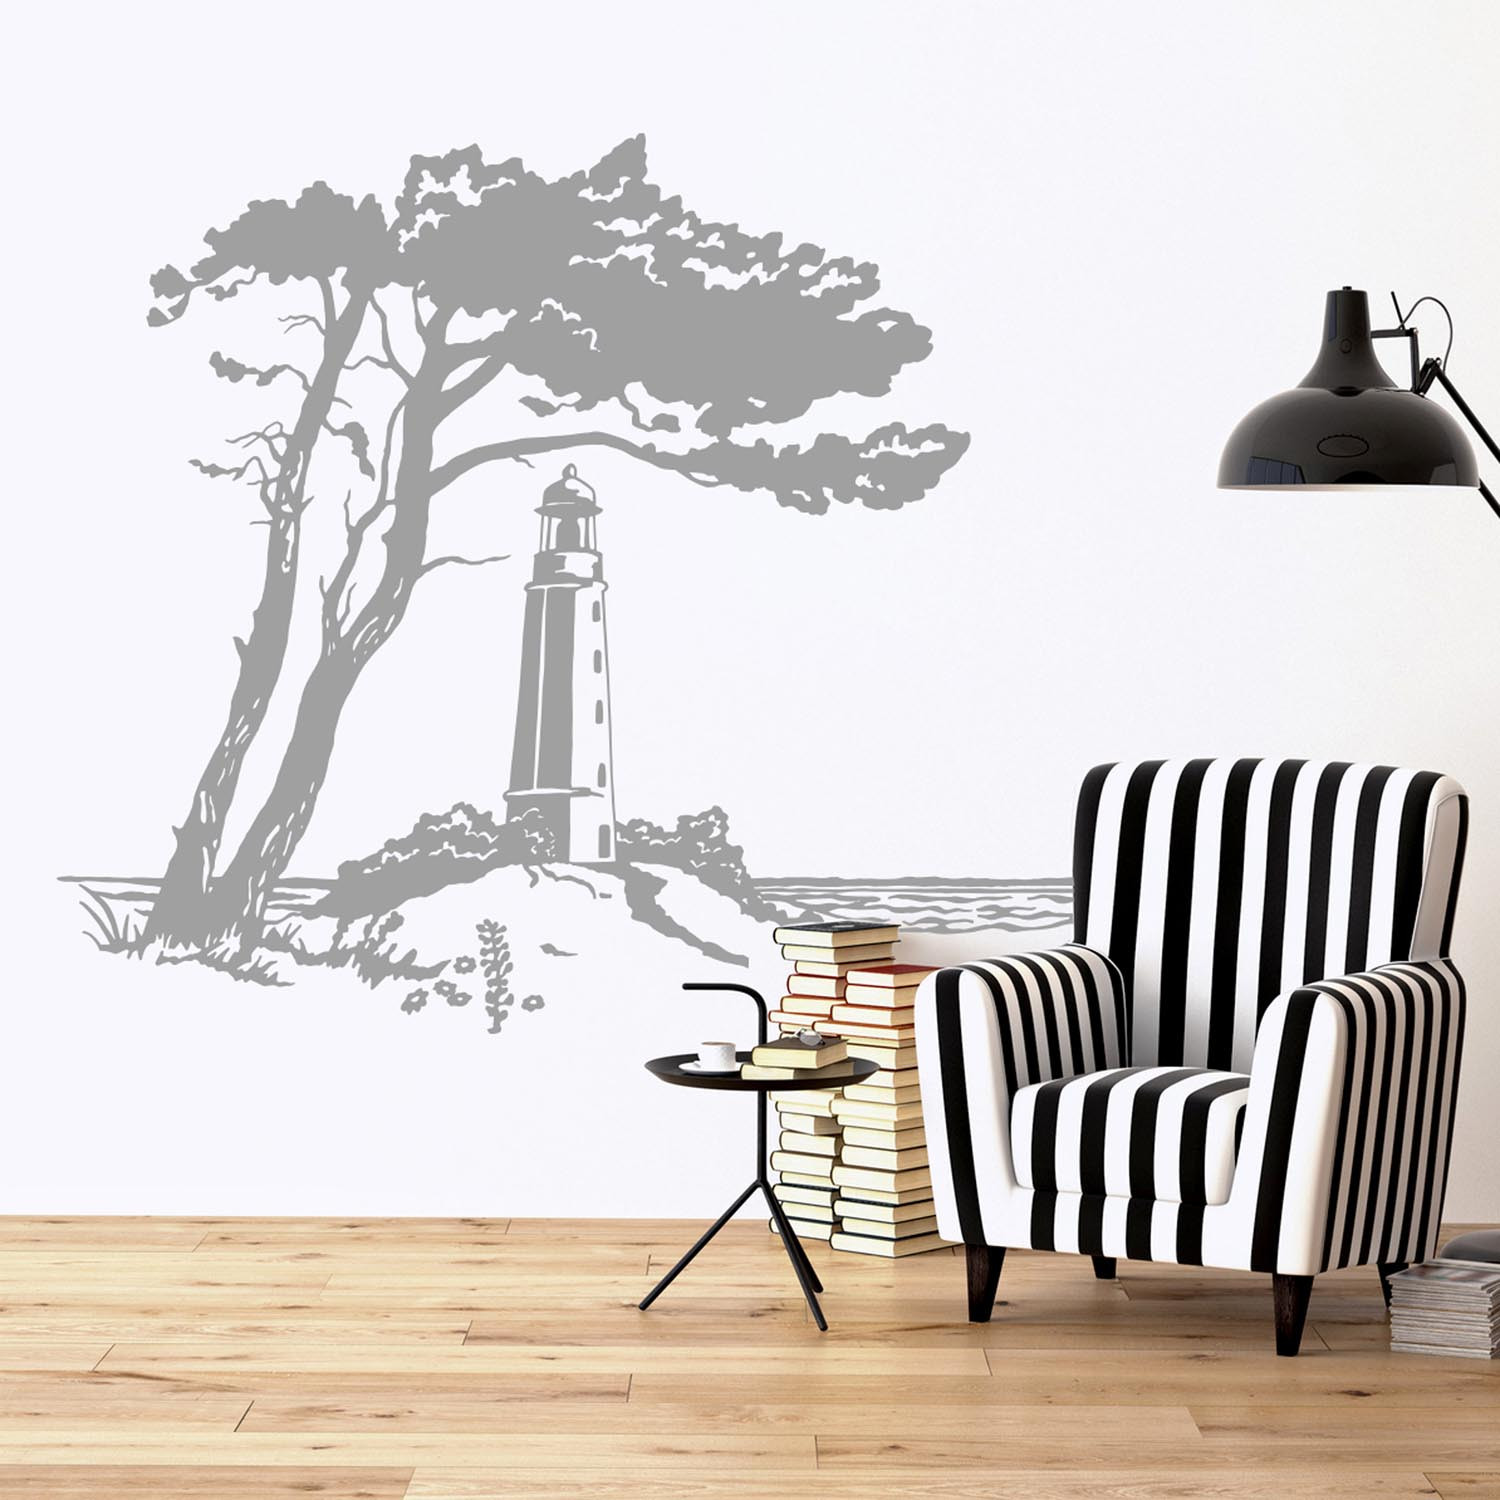 wandtattoo ostsee hiddensee mit leuchtturm m1929. Black Bedroom Furniture Sets. Home Design Ideas